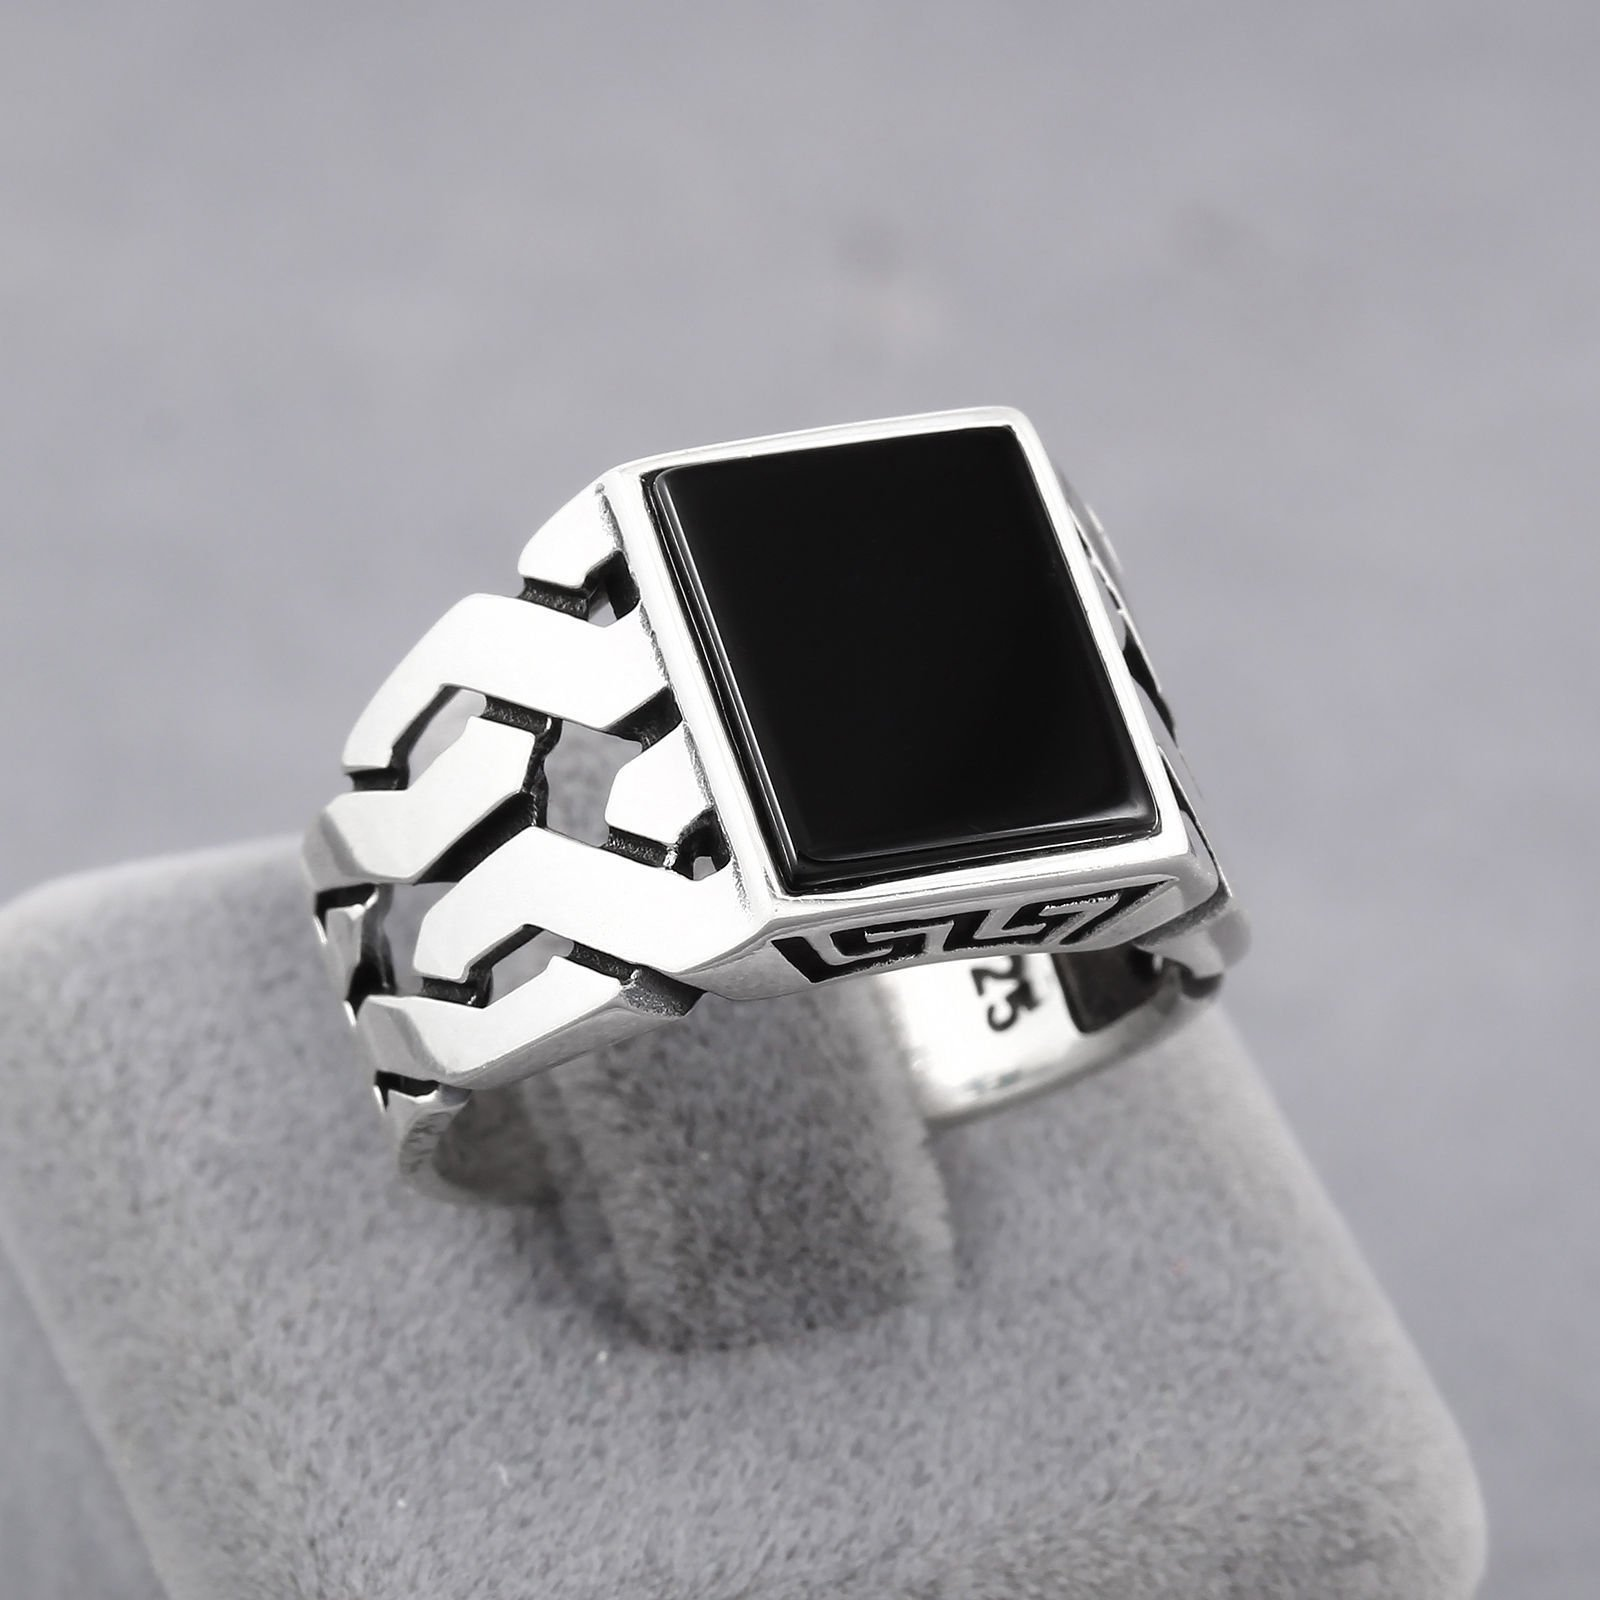 Chimoda Turkish Handmade Jewelry Black Onyx Stone 925 Sterling Silver Men's Ring (9) by Chimoda (Image #3)